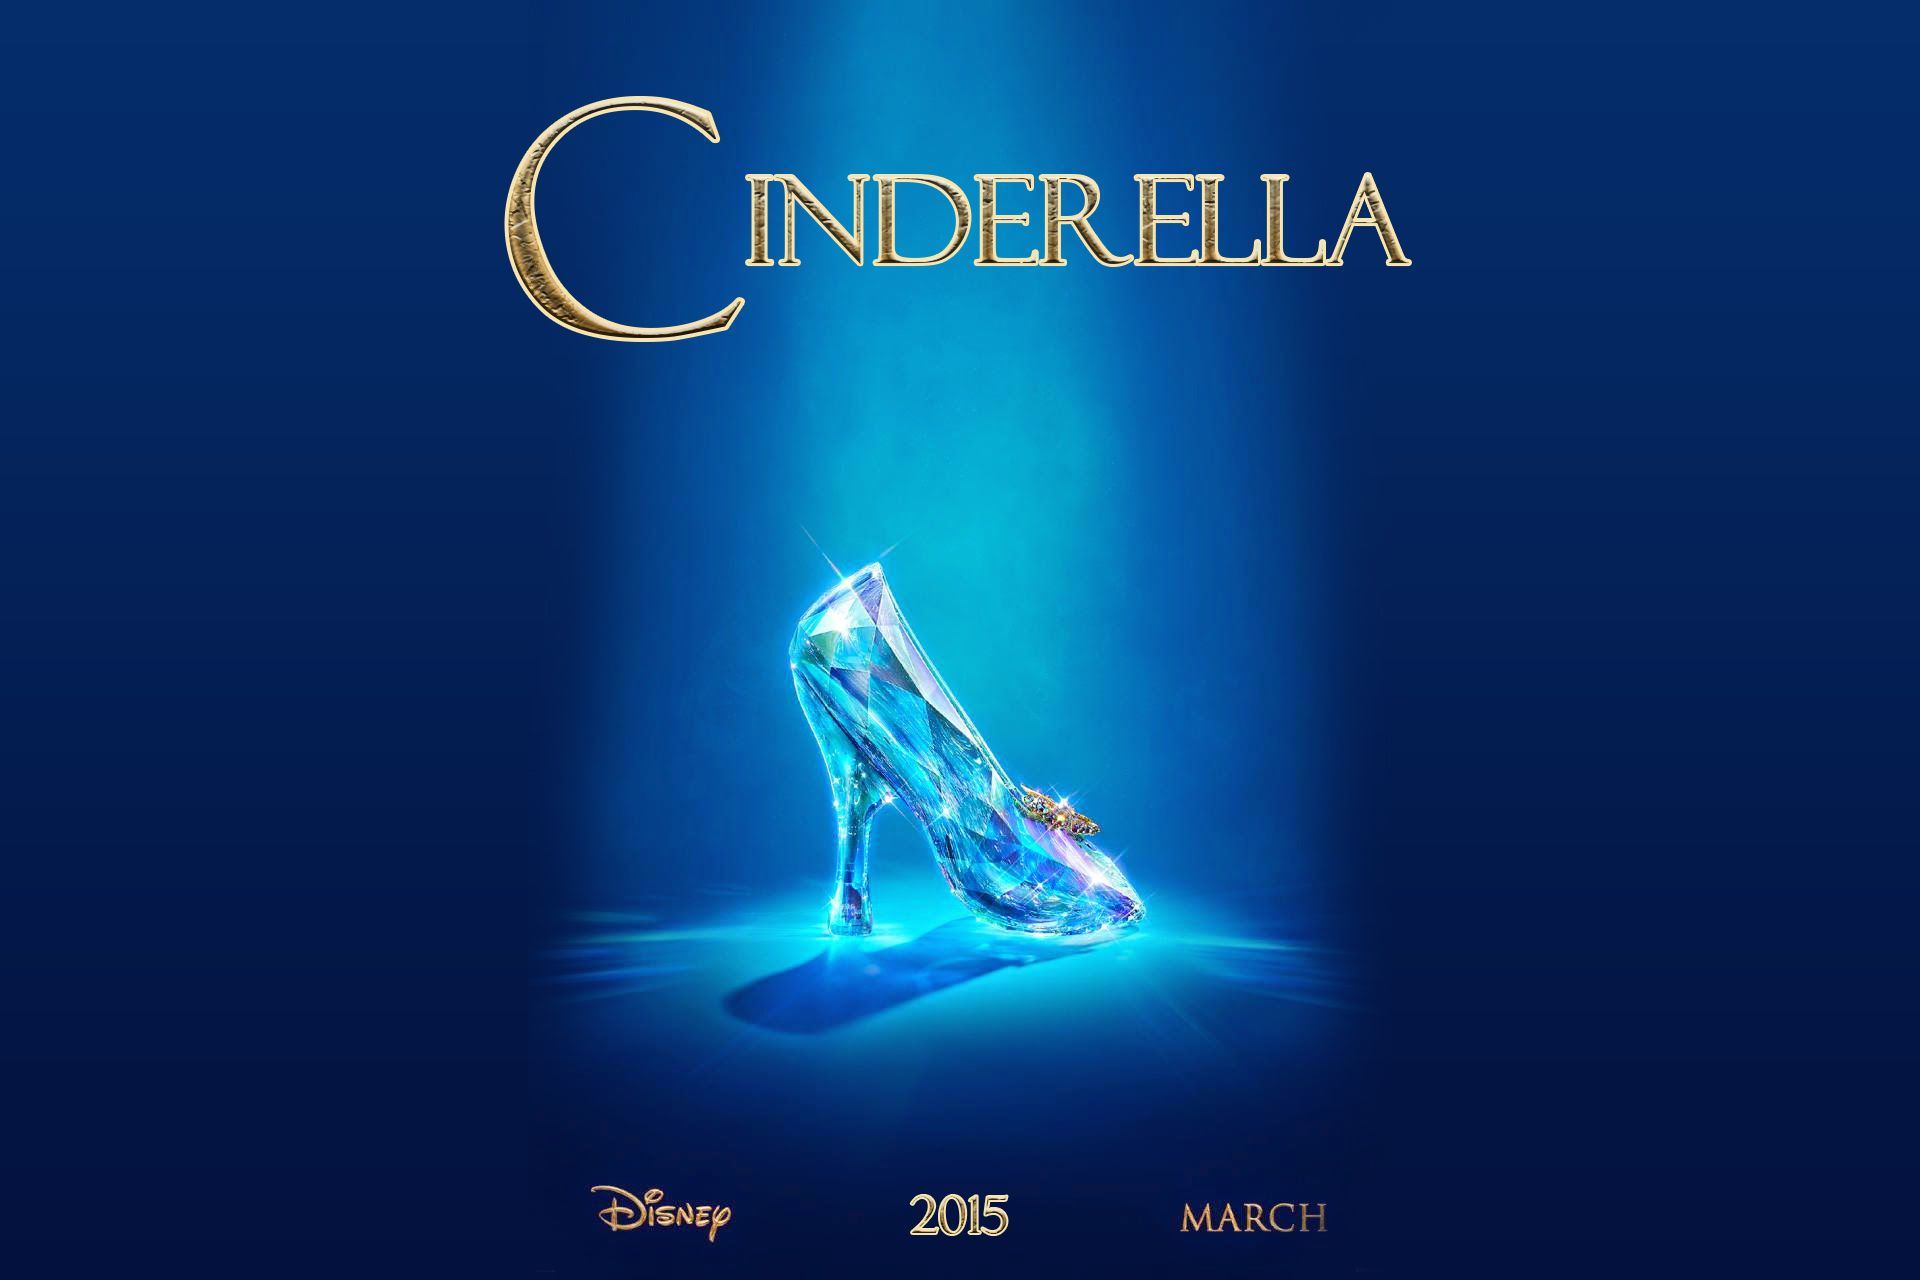 cinderella movie wallpaper 52201